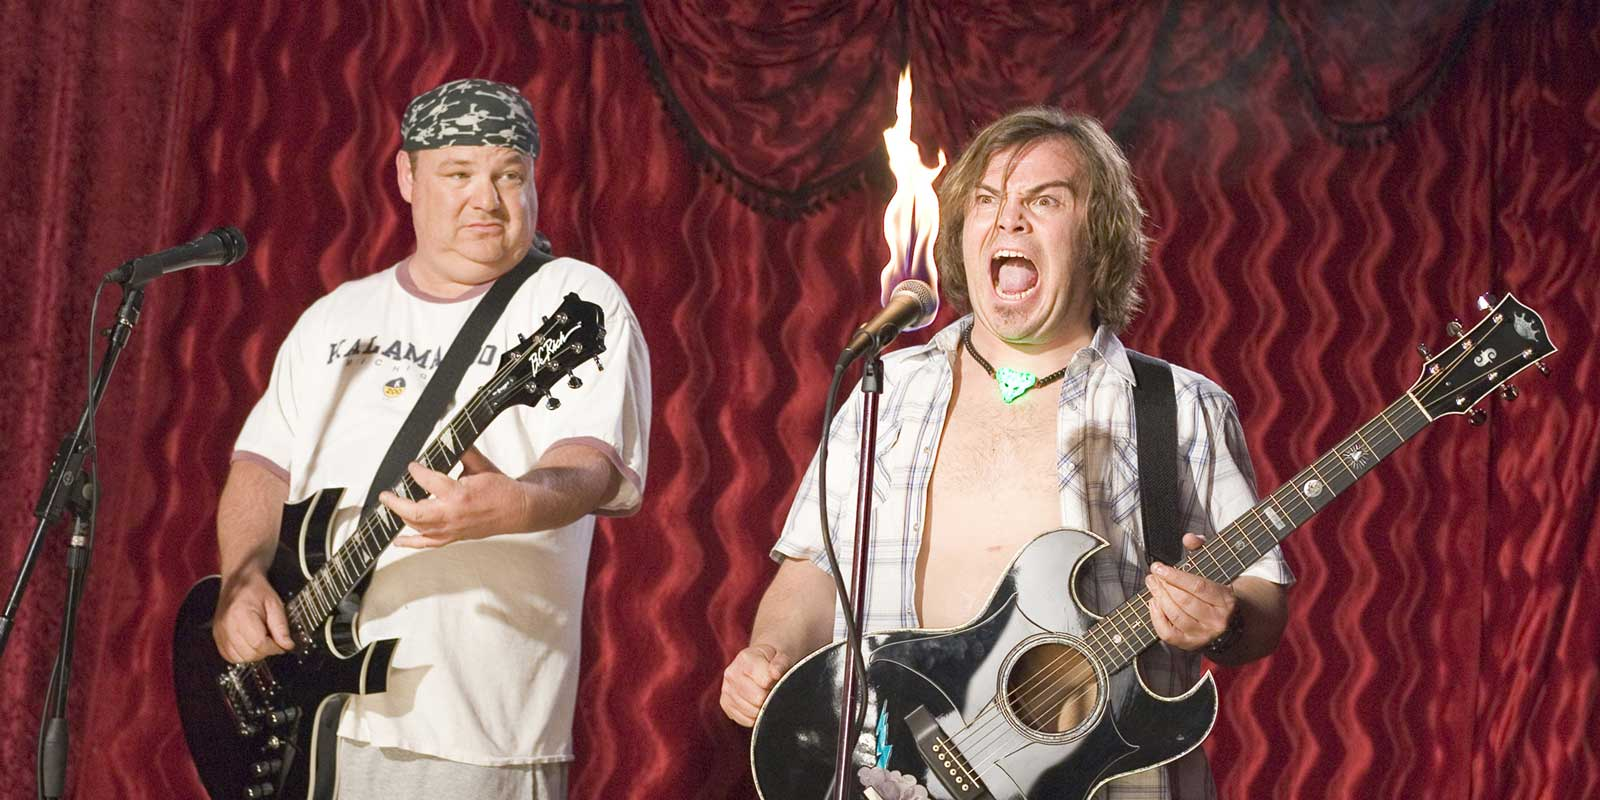 Tenacious D - (l to r) Kyle Gass and Jack Black in Tenacious D and the Pick of Destiny (2006)